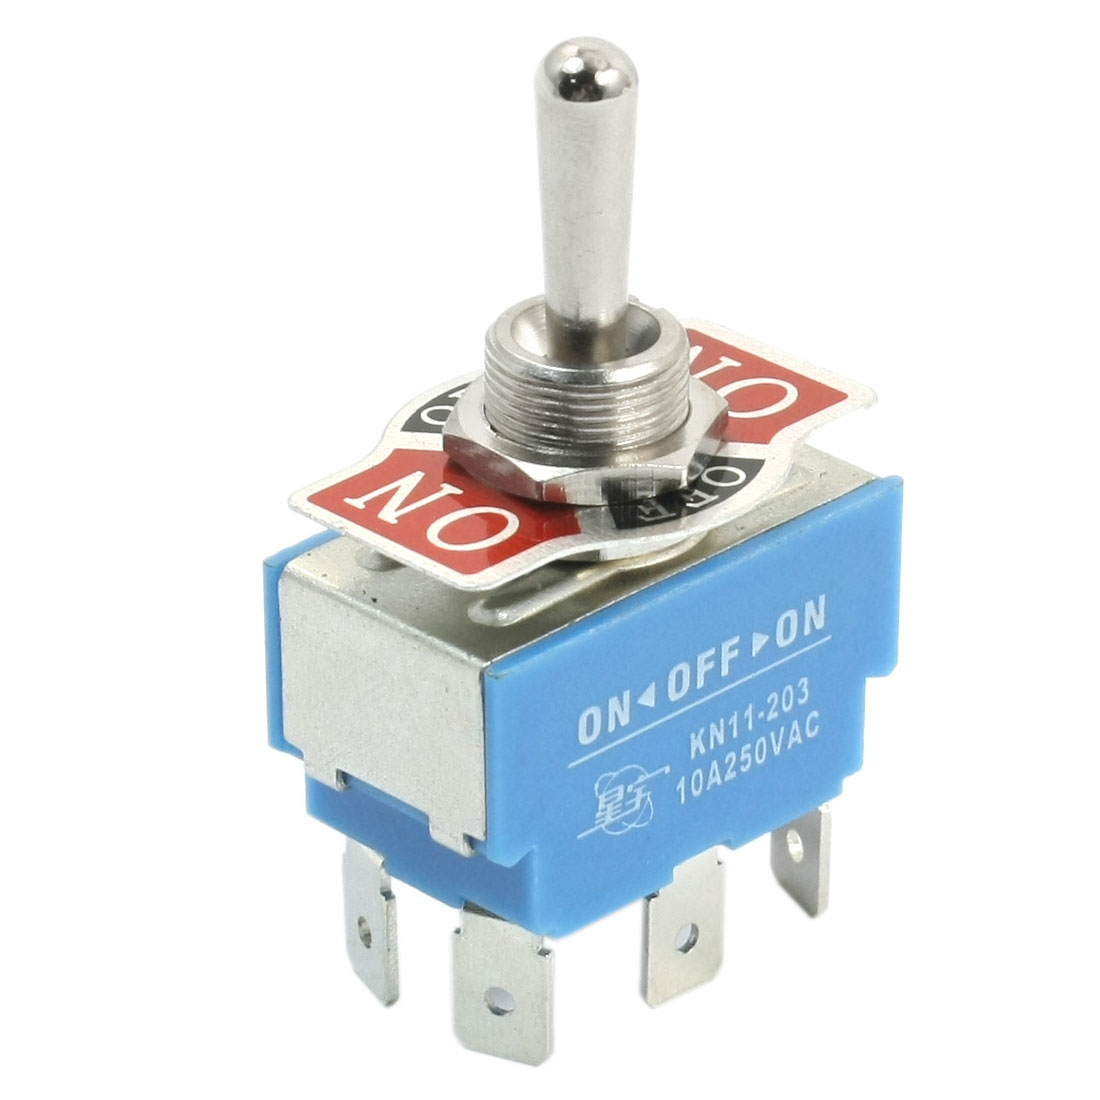 12mm Panel Mount DPDT ON/OFF/ON 3 Position Toggle Switch AC 250V 10A KN11-203